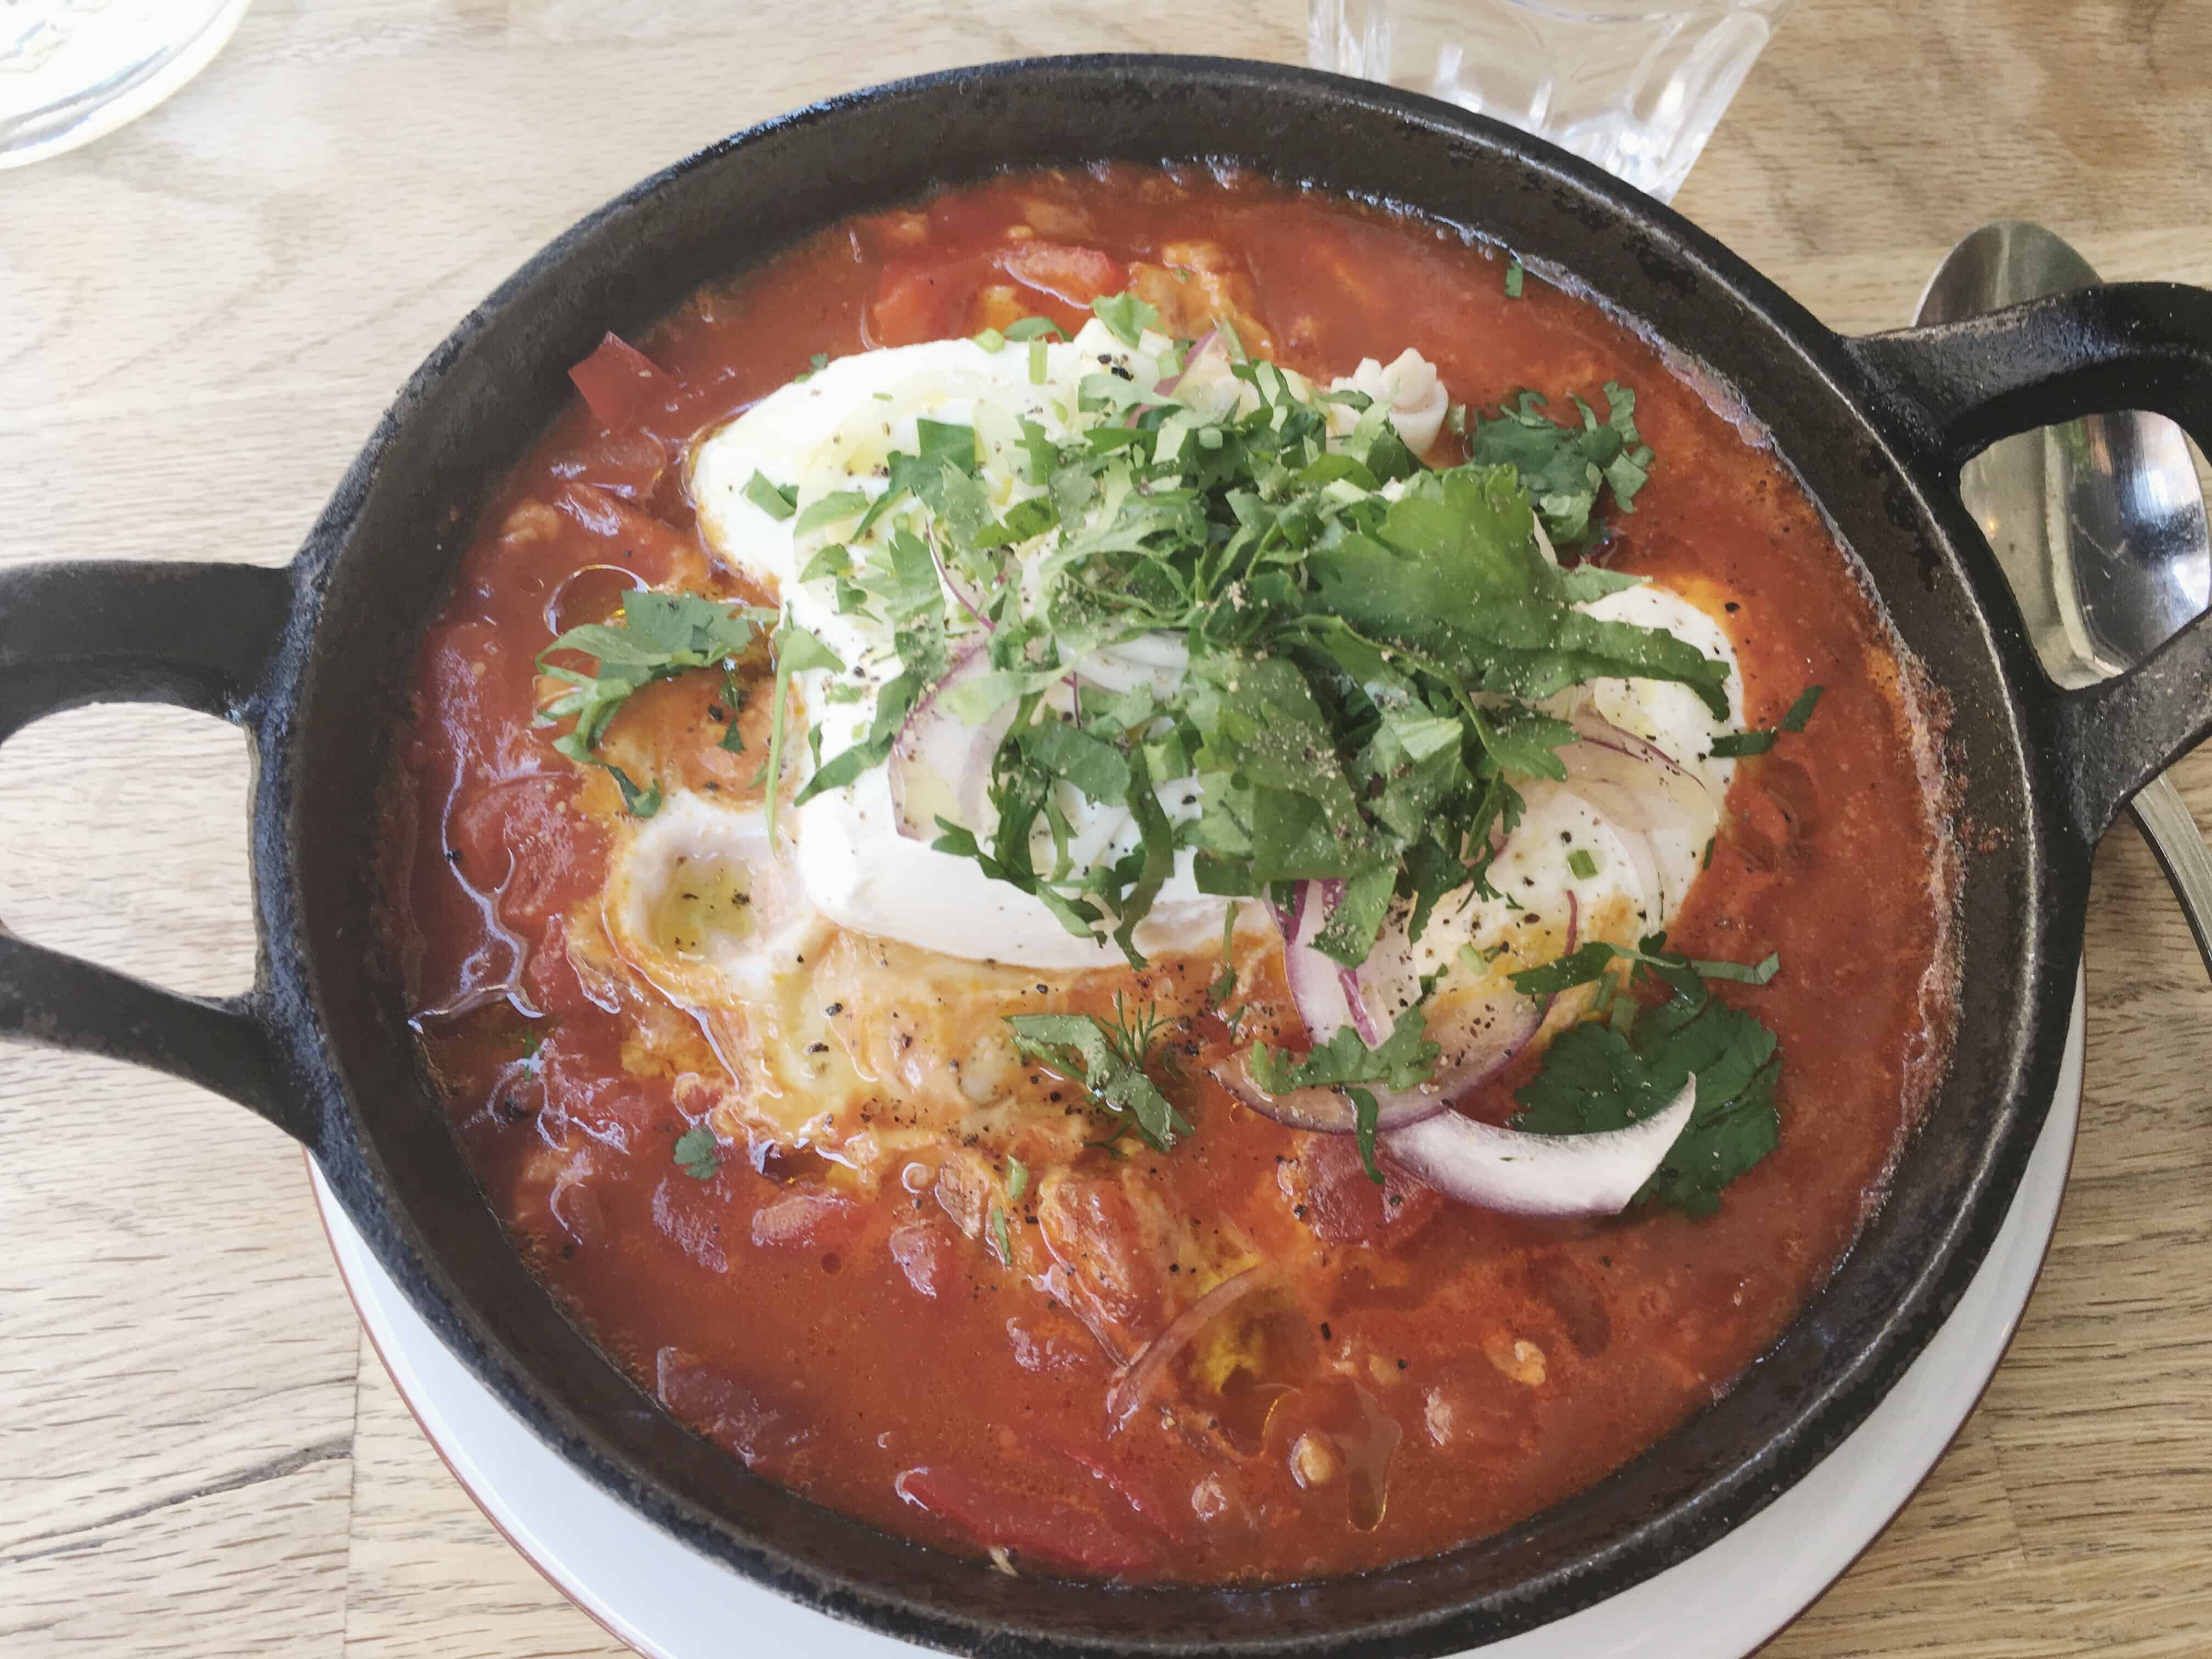 Shakshuka, or eggs in tomato sauce, originated from North Africa but is now a very popular dish in places in the Middle East, such as Israel